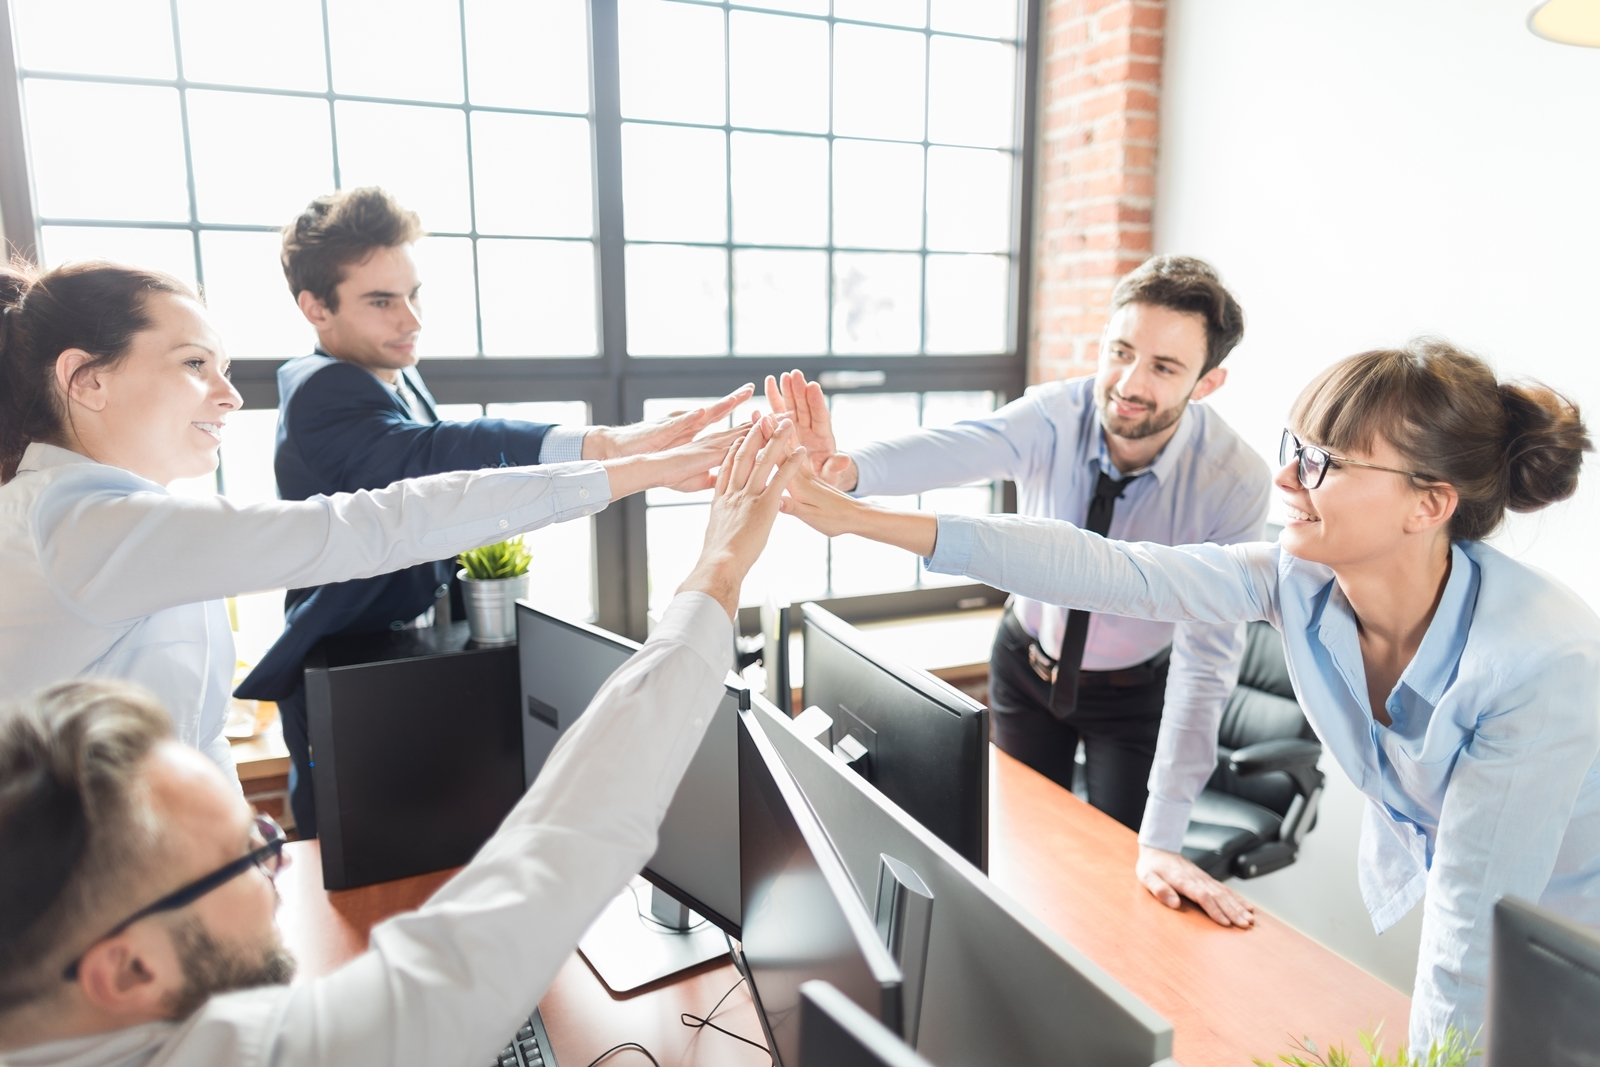 5 people high fiving each other after success. Myers Briggs Team Building